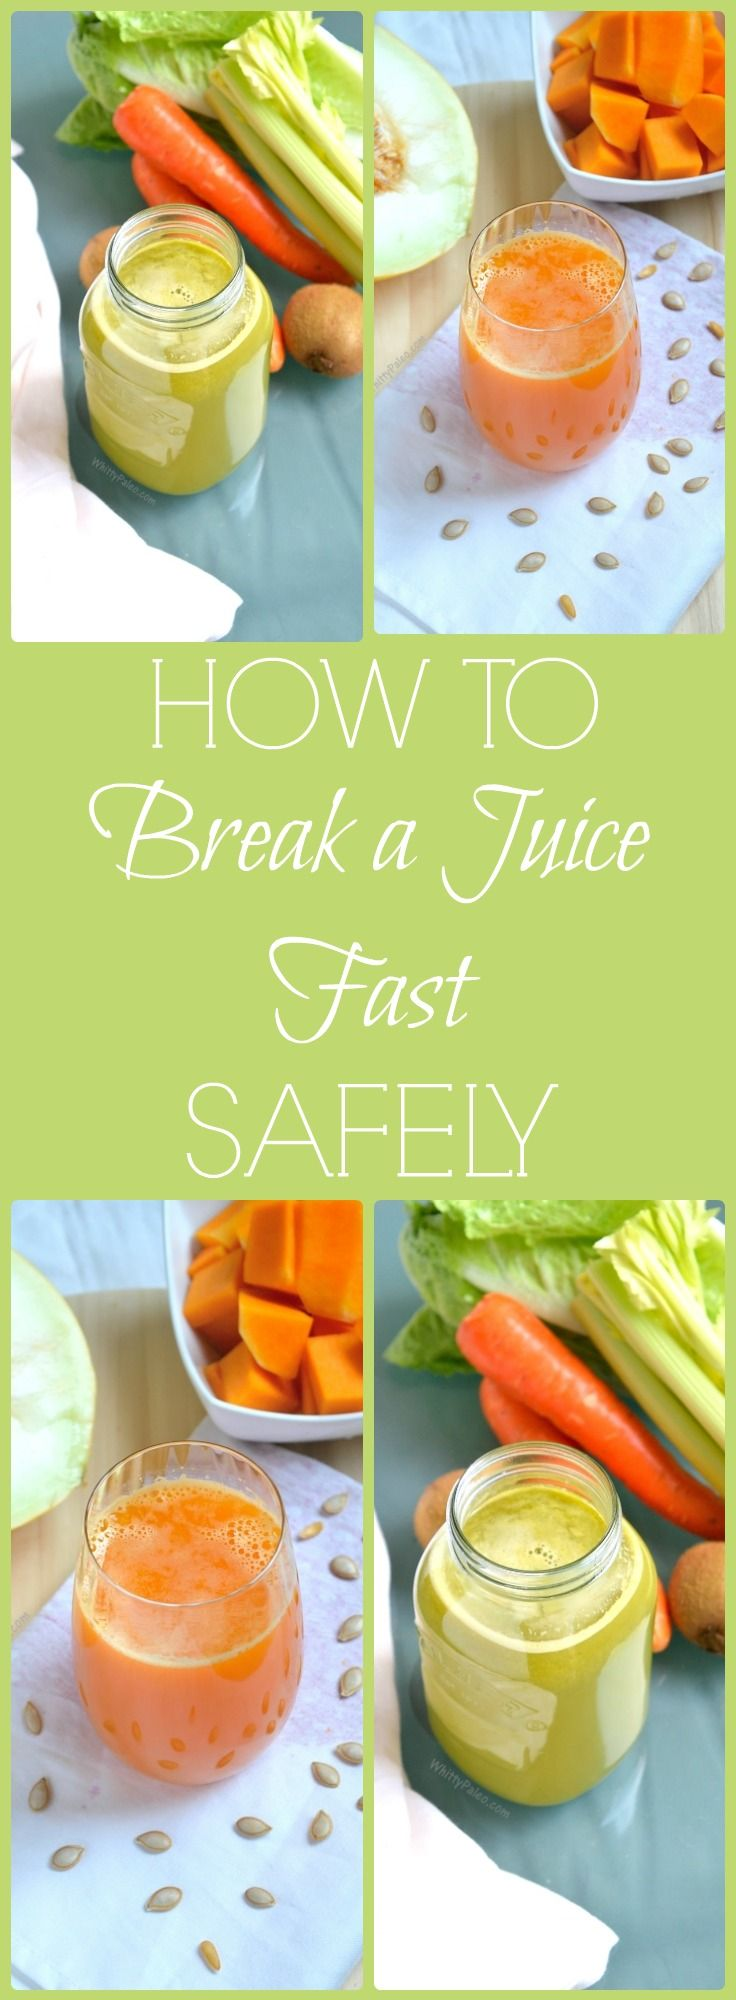 How to break a juice cleanse or fast safely - WhittyPaleo